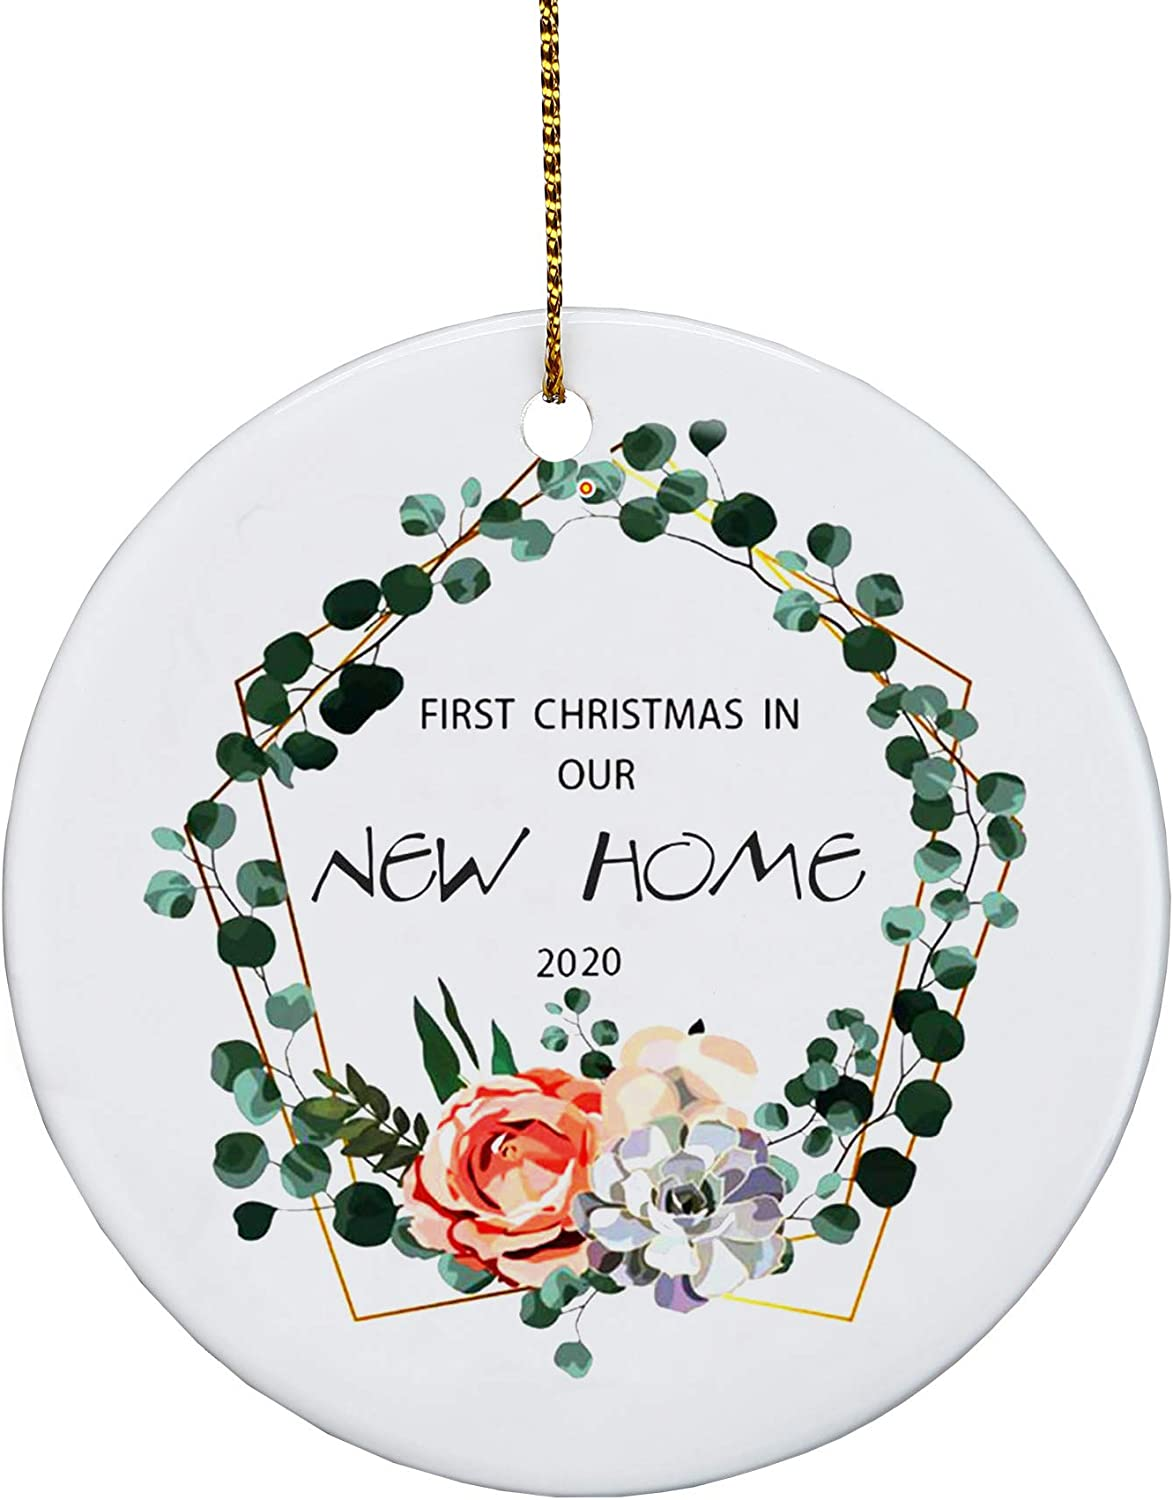 Our First Christmas in Our New Home 2020 ,Eve Family Ornament Ceramic Gifts| Ceramic Handmade Ornaments |Crafts Window Door Kitchen Dress up Hanging – A Year to Remember (Green)